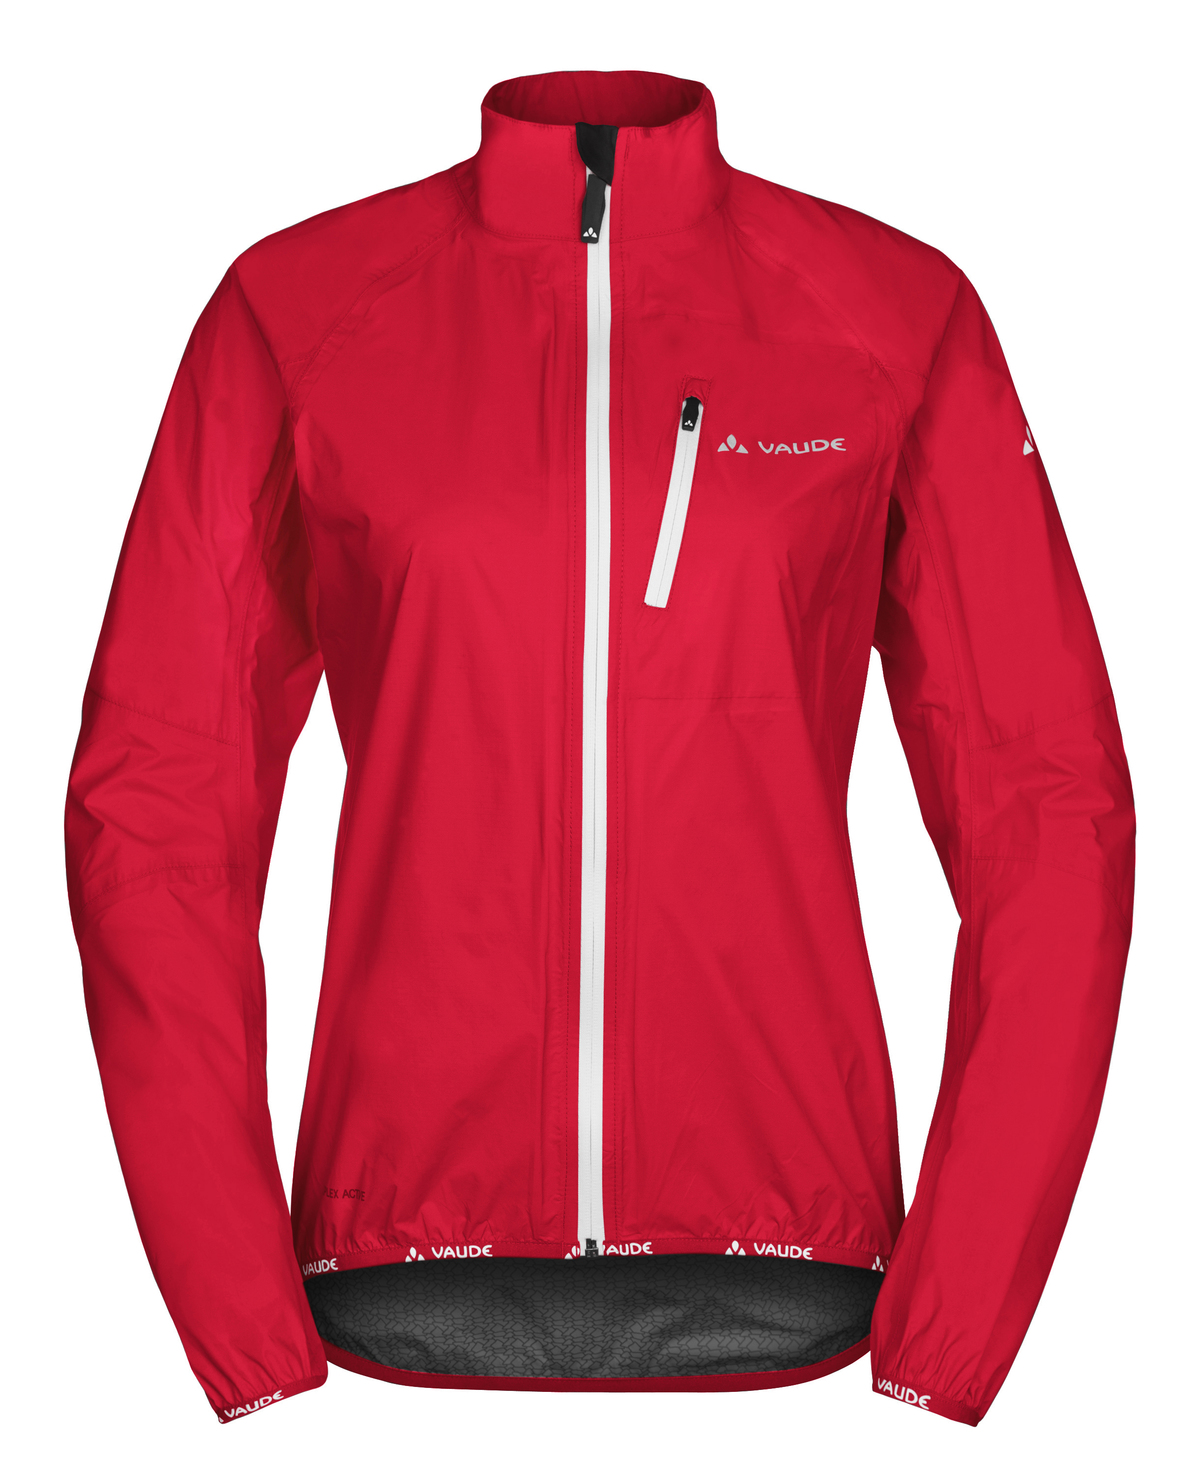 VAUDE Women´s Drop Jacket III red Größe 34 - schneider-sports